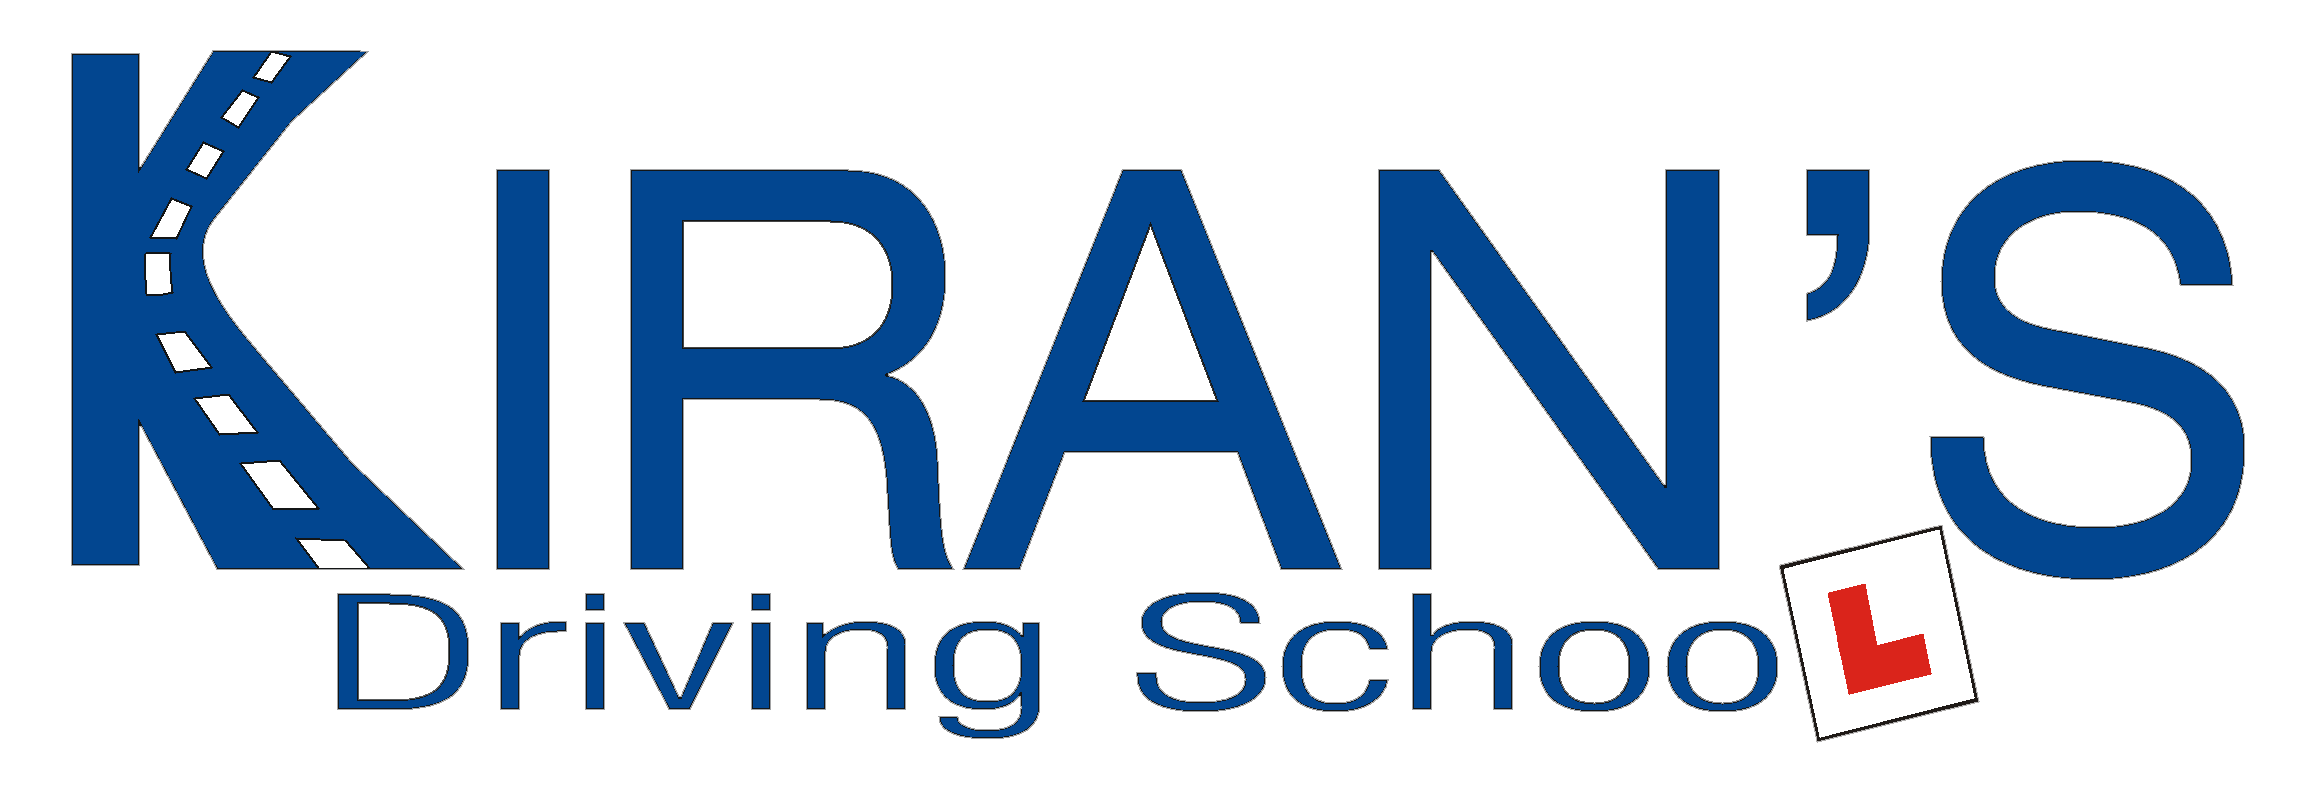 Kiran&s Driving School